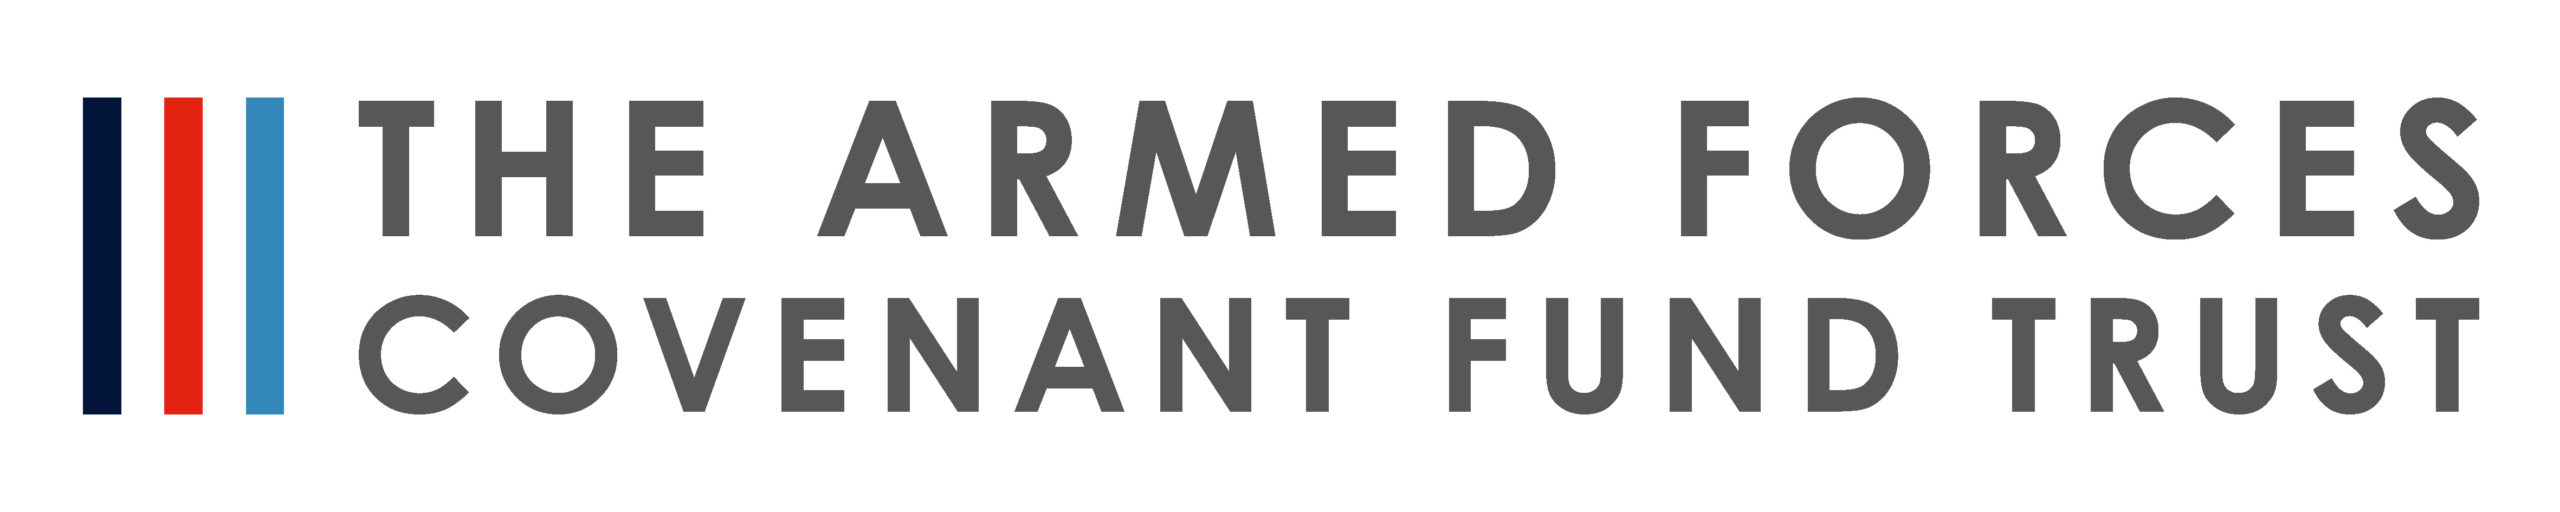 Armed Forces Covenant Fund Trust full colour logo